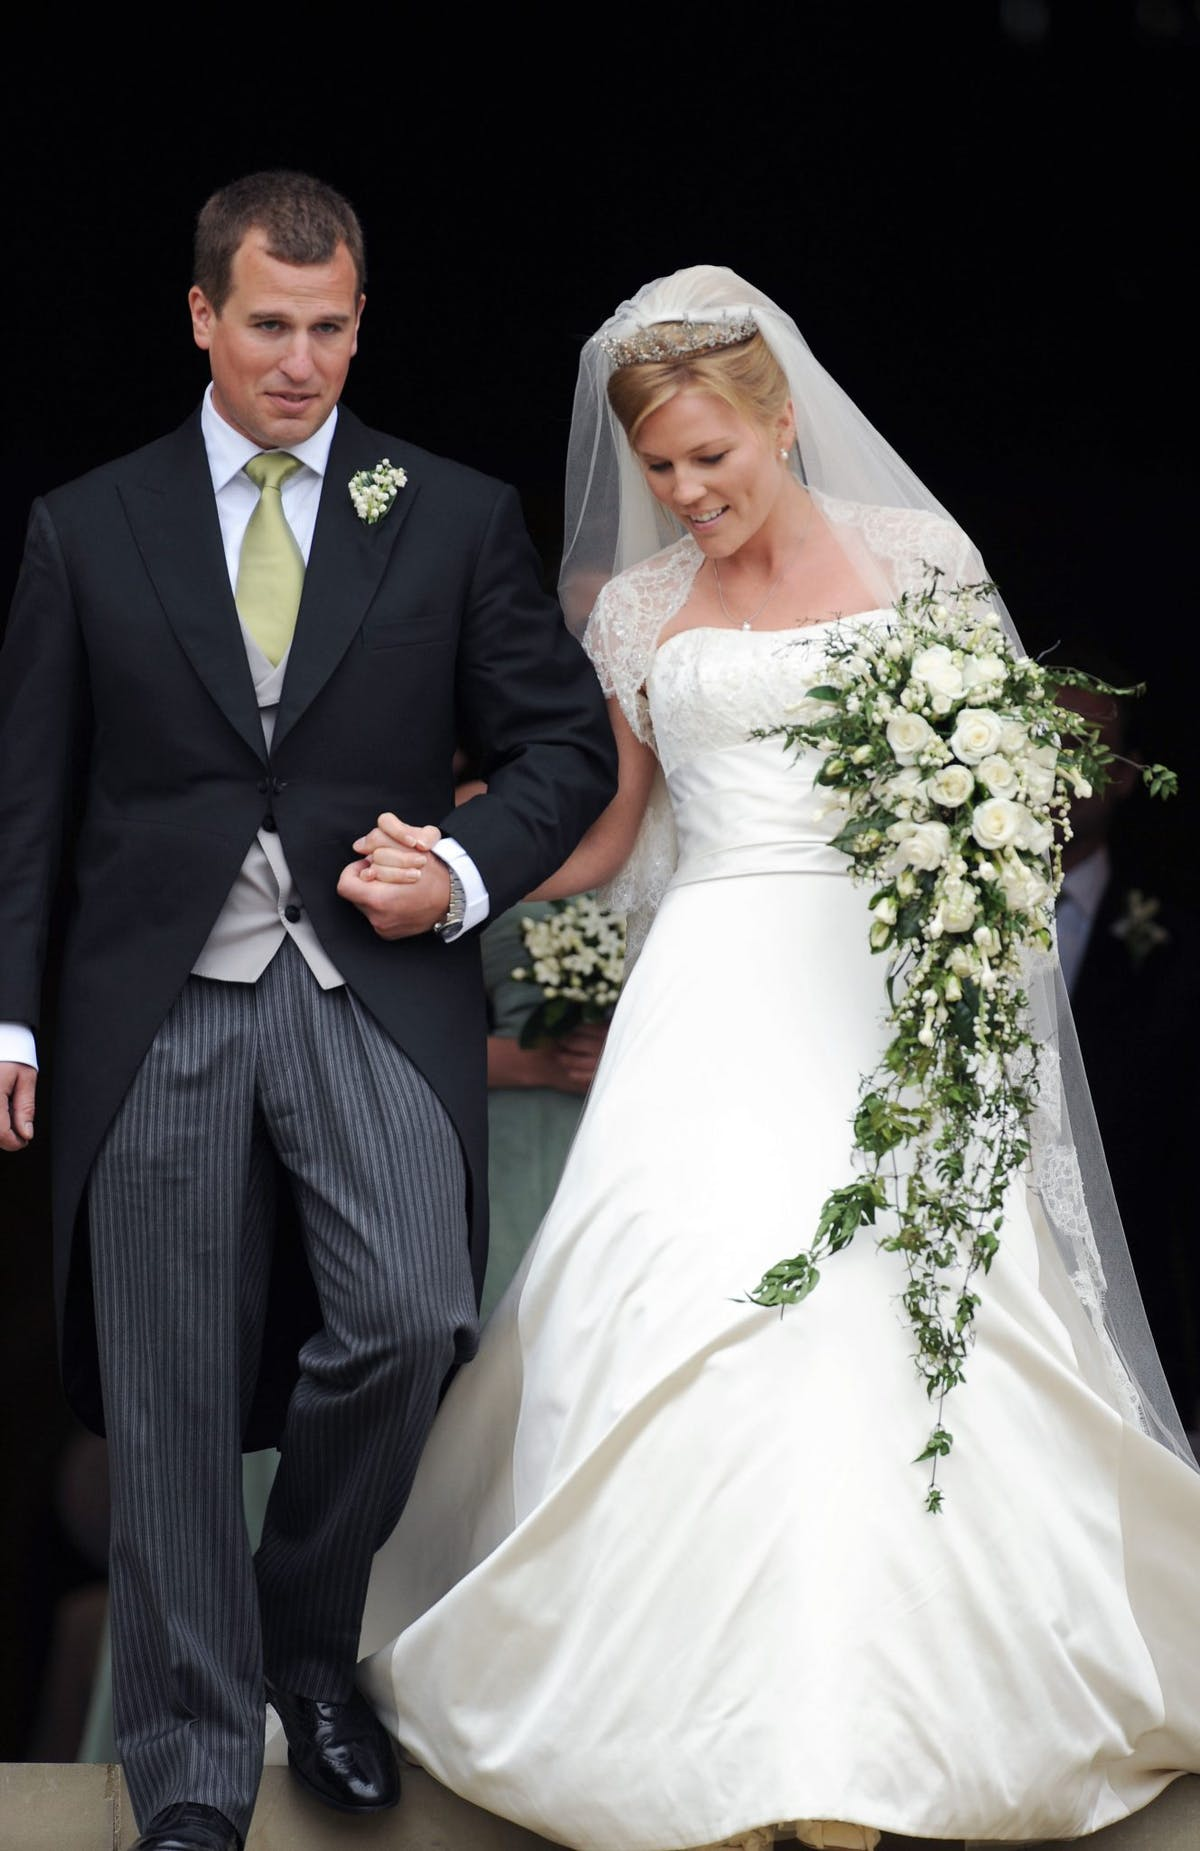 Royal wedding dresses | Stylist